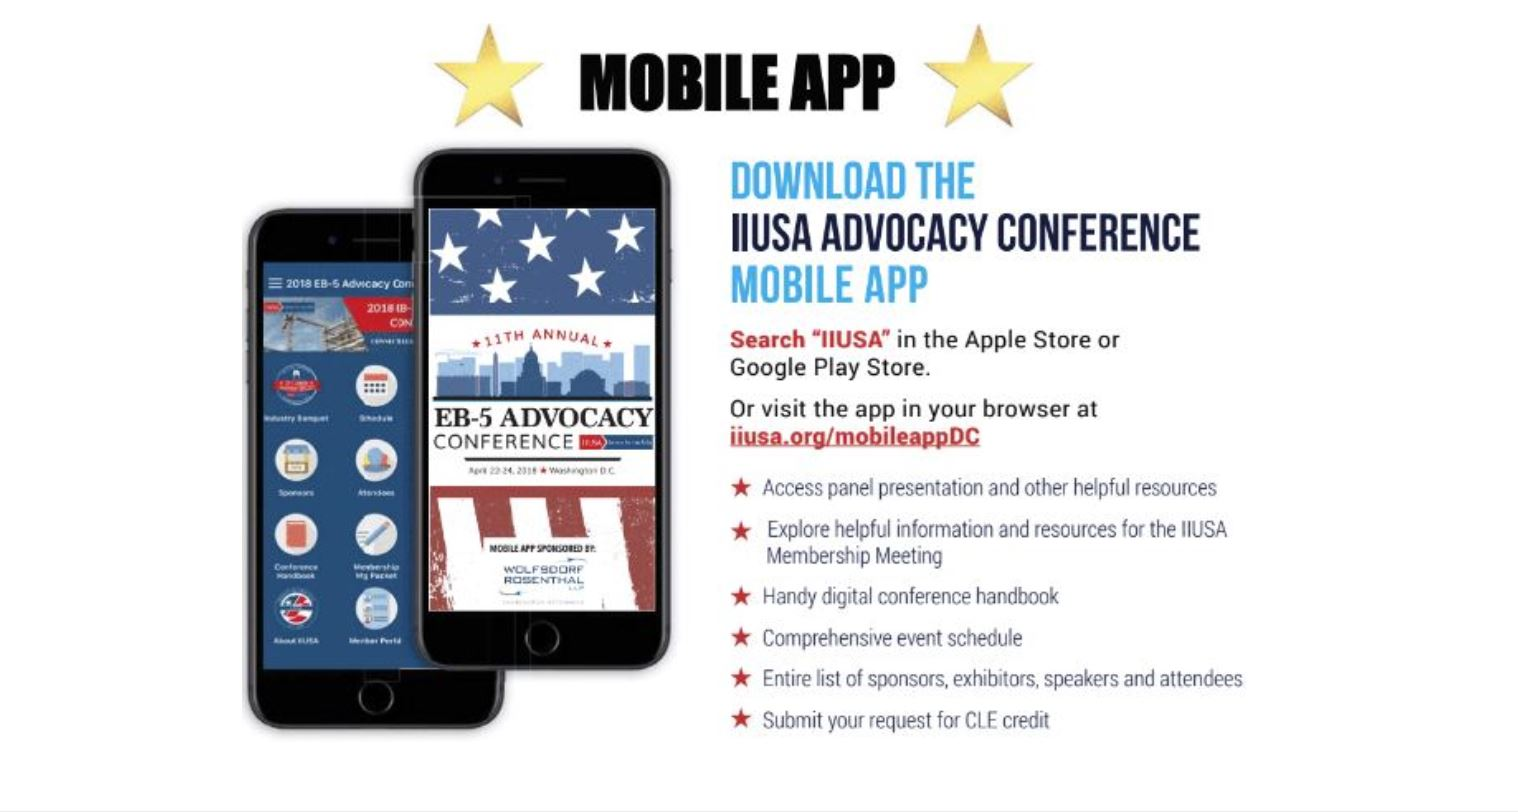 Heading to the EB-5 Advocacy Conference? Download the Mobile App Today!